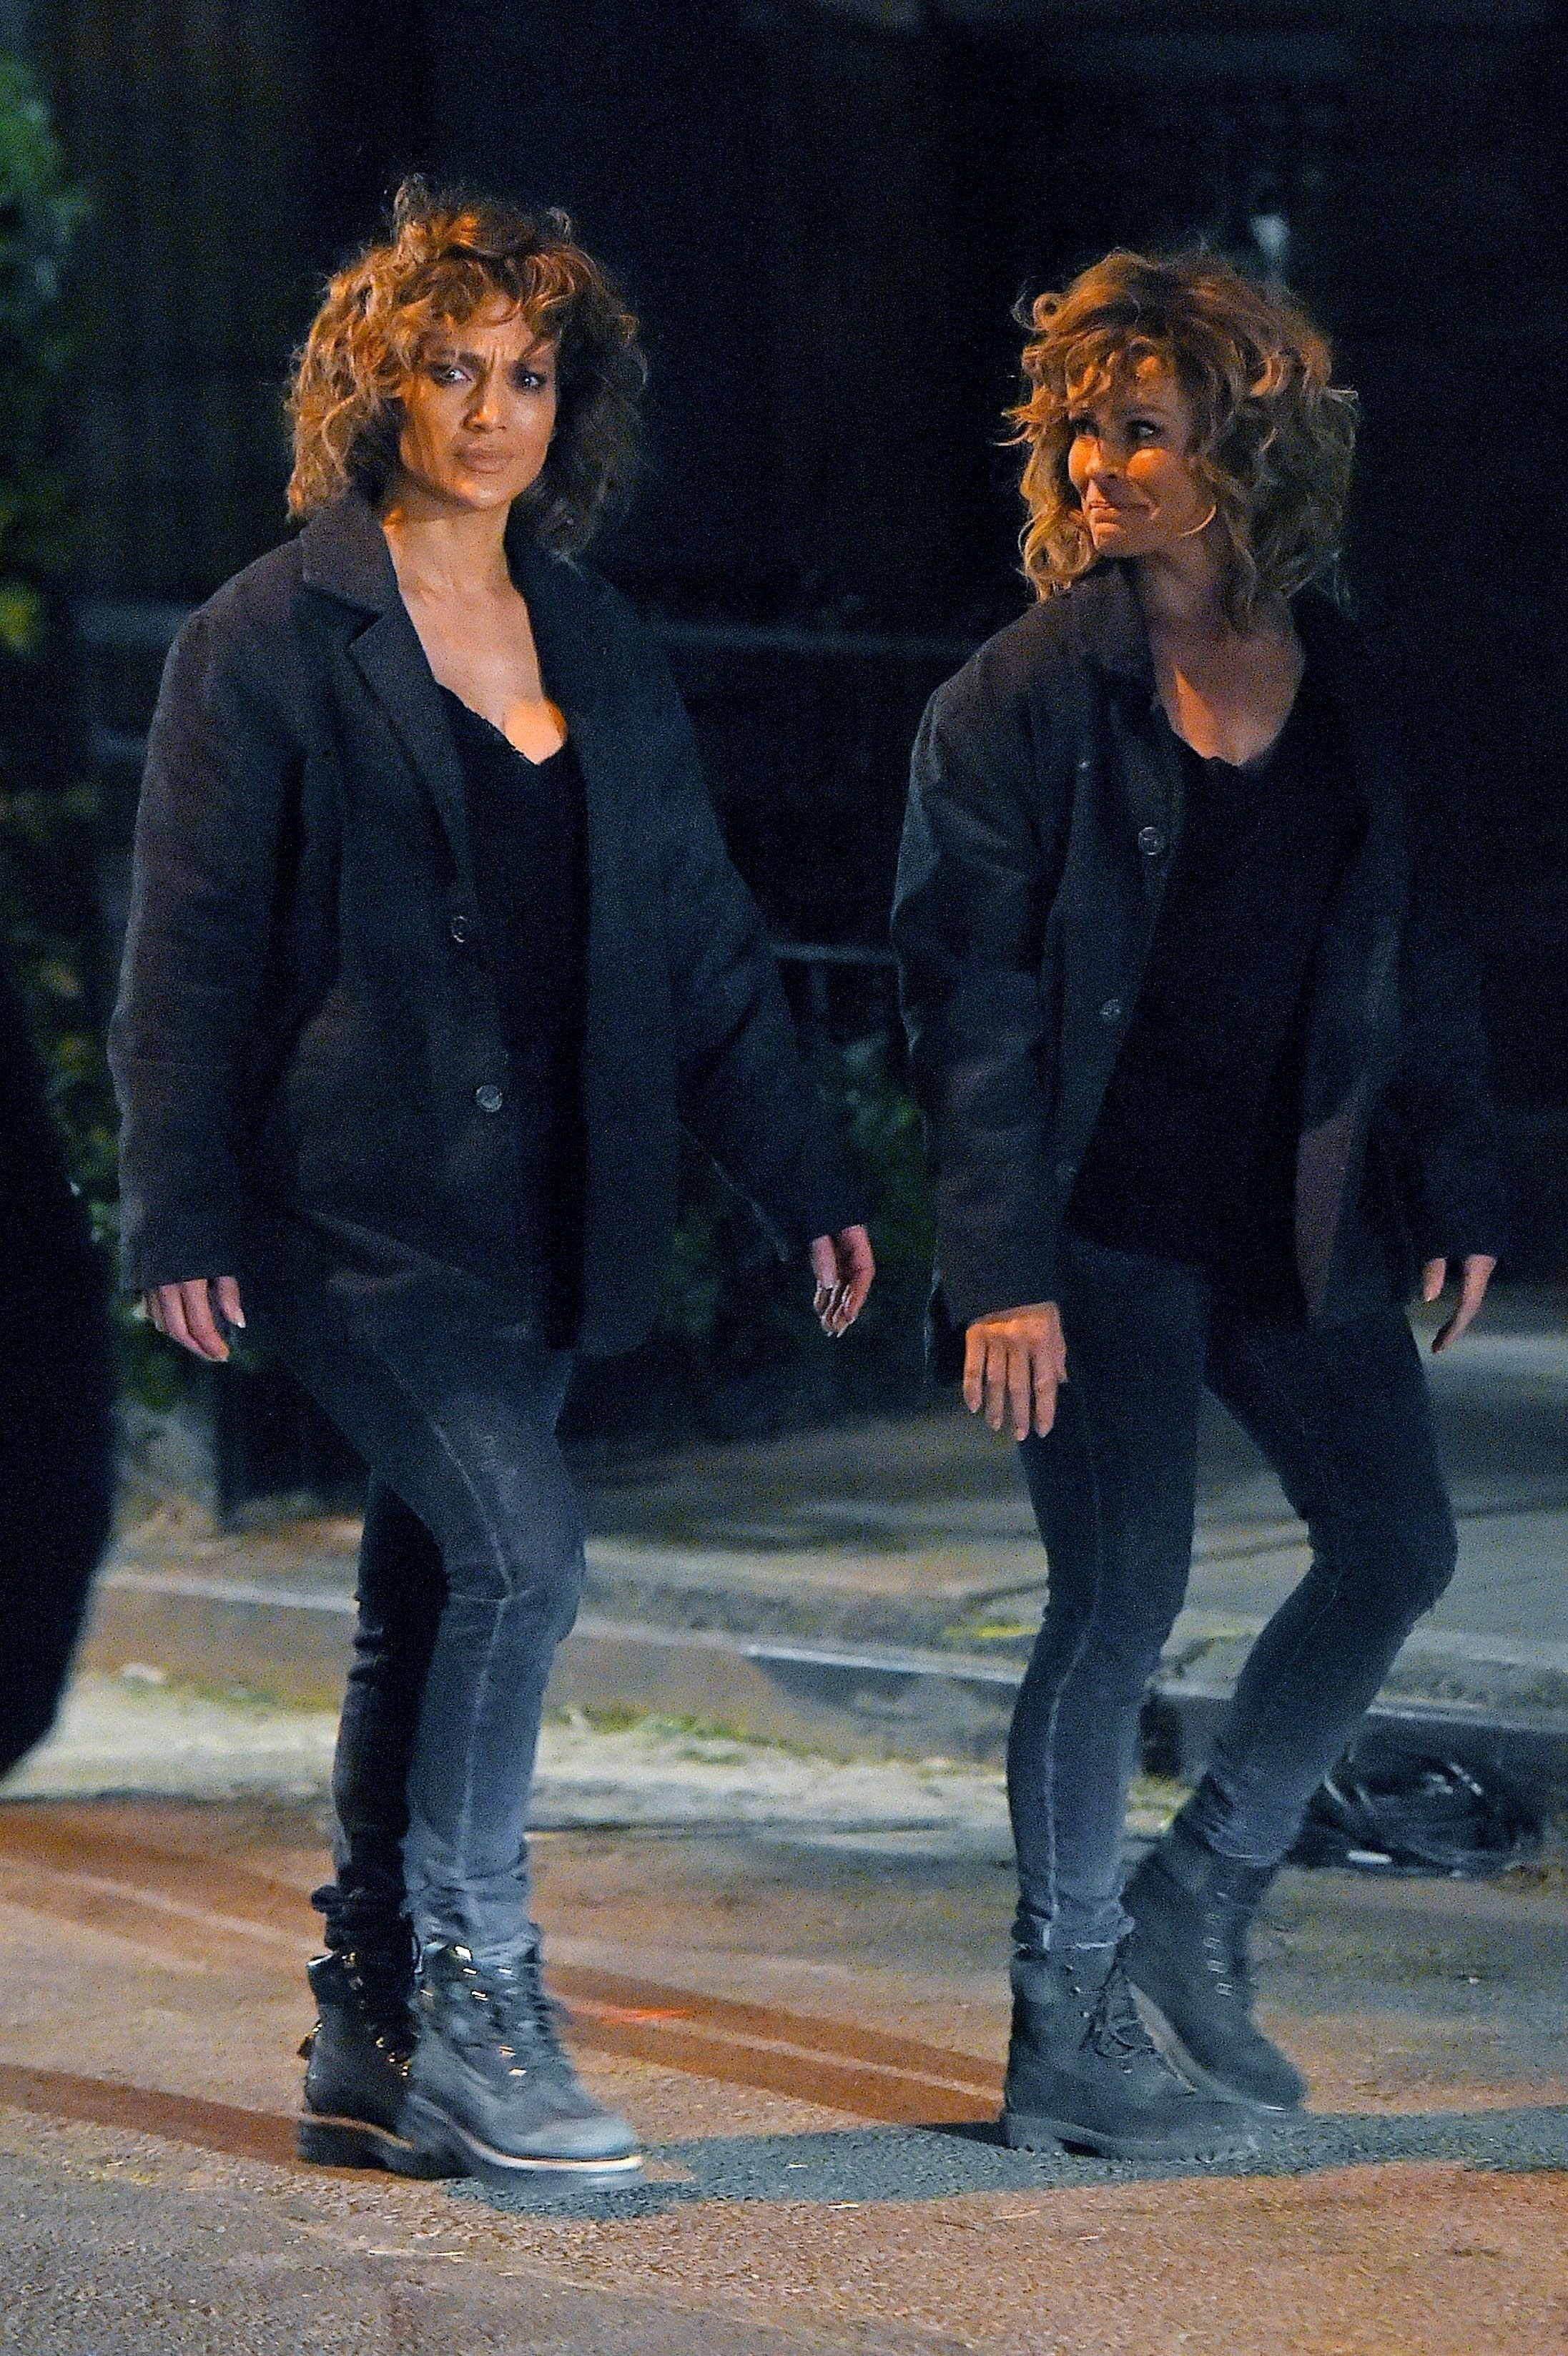 Jennifer Lopez and her stunt double walking at night